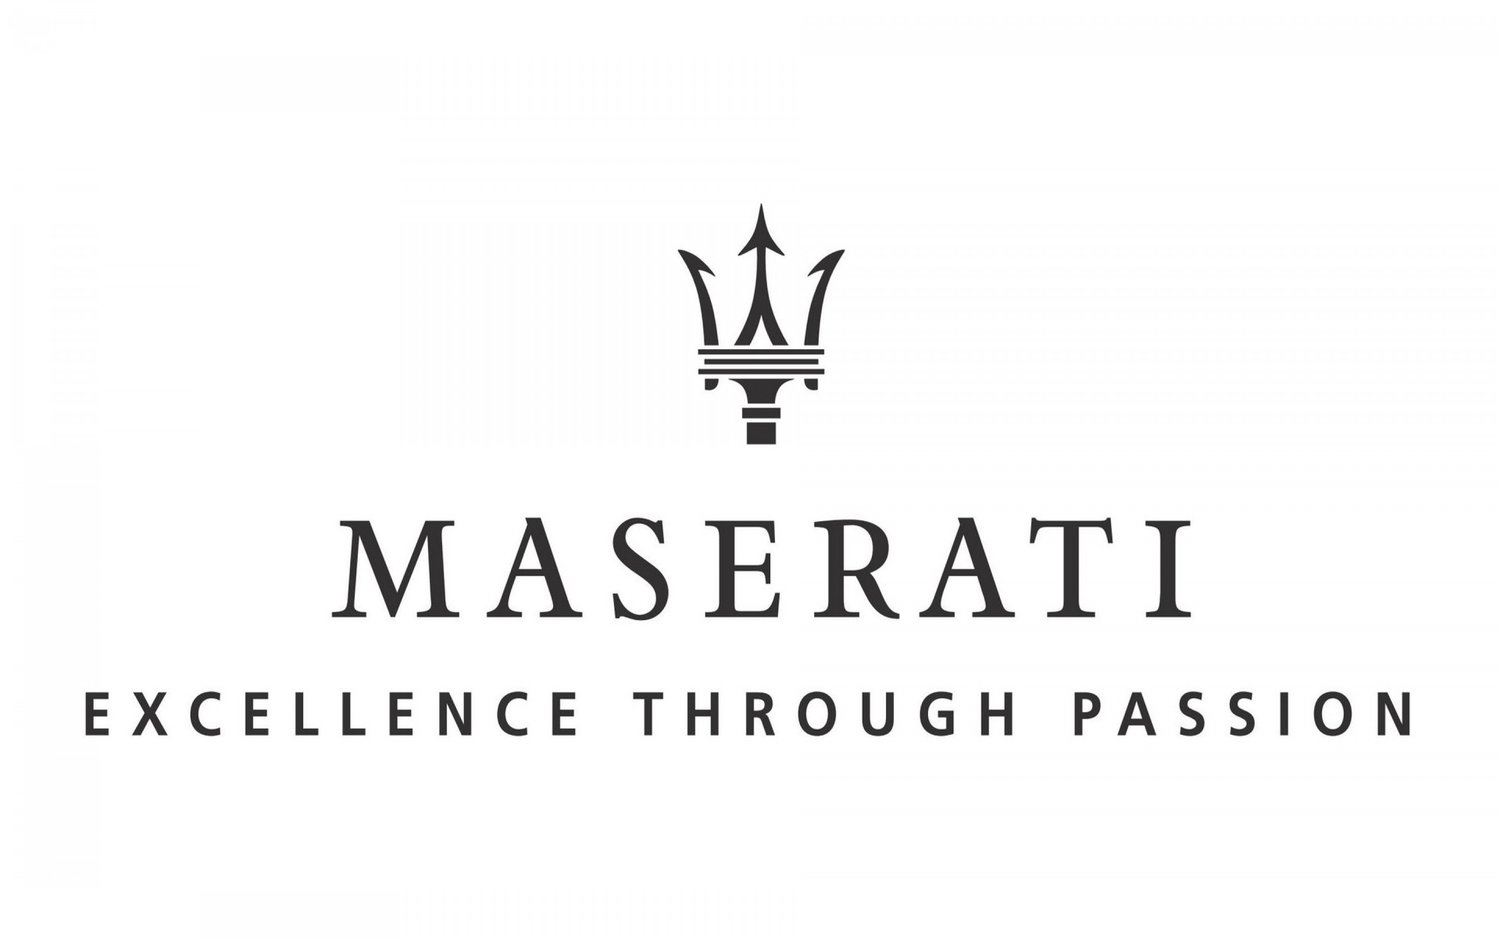 maserati-logo-wallpaper-8.jpg